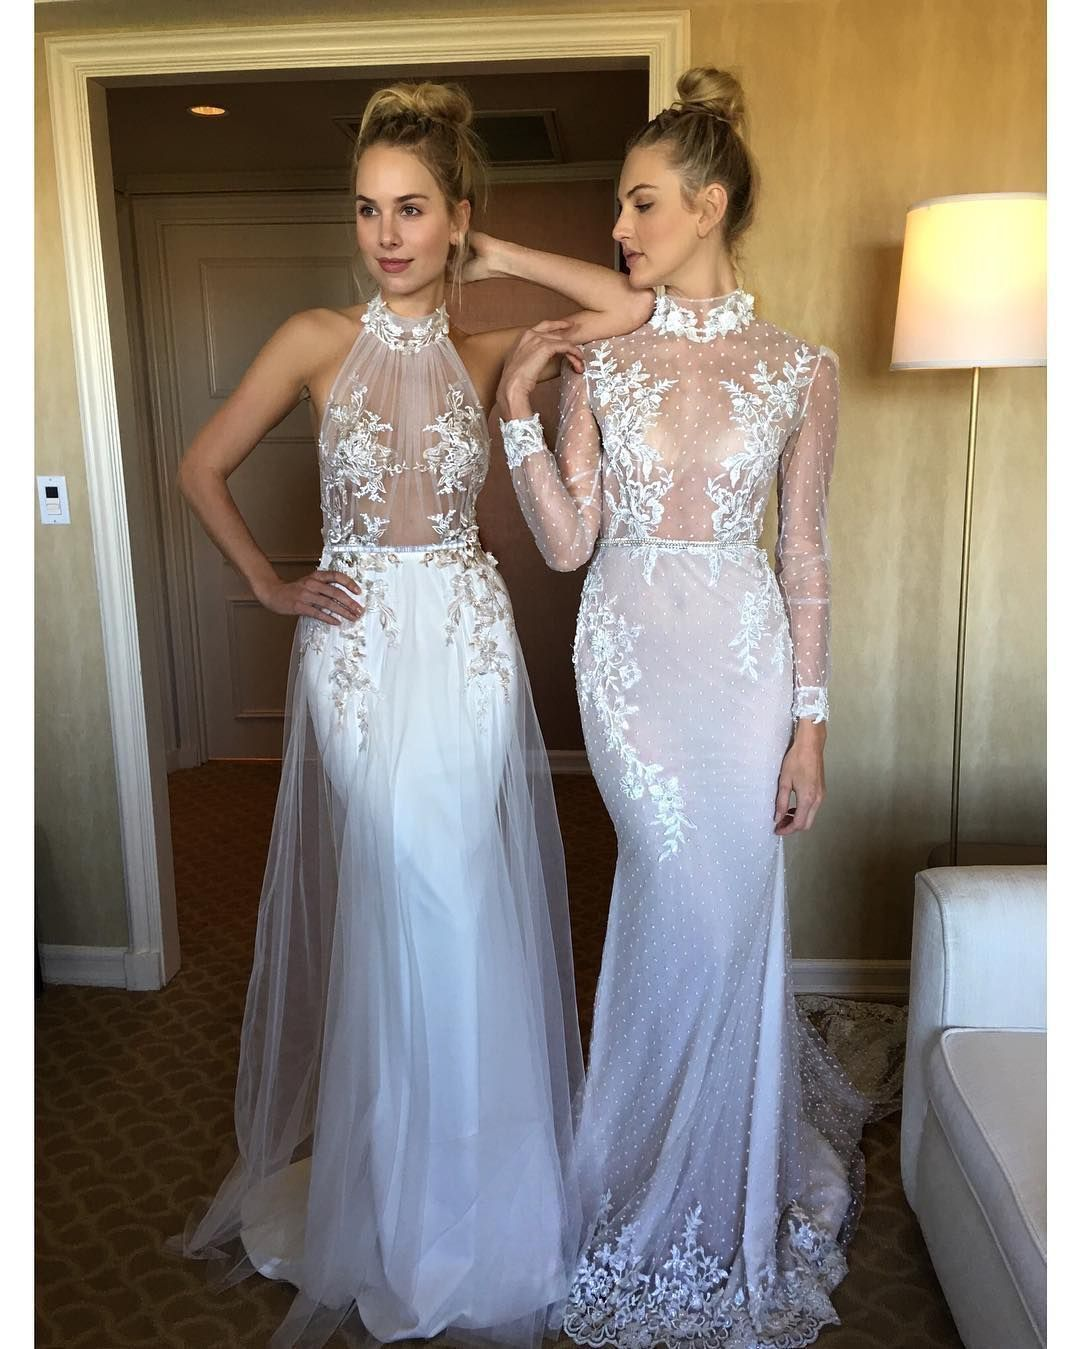 Pin by samanthaaa on jared leto x life pinterest bridal dresses